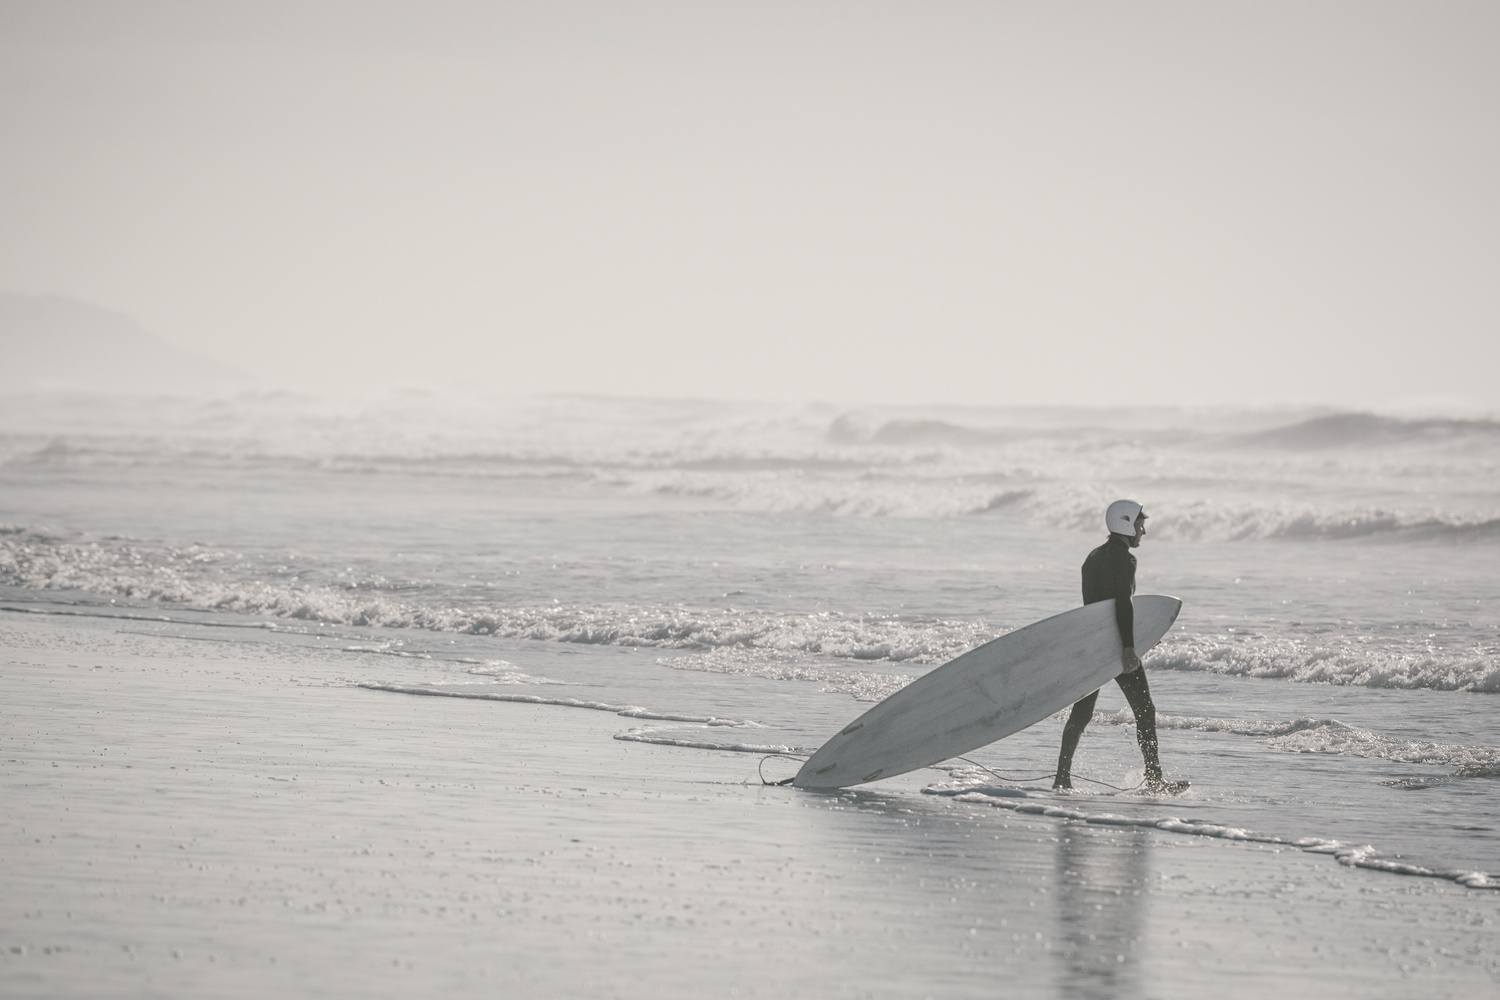 Surfer Ready for Battle by Sean Gibson